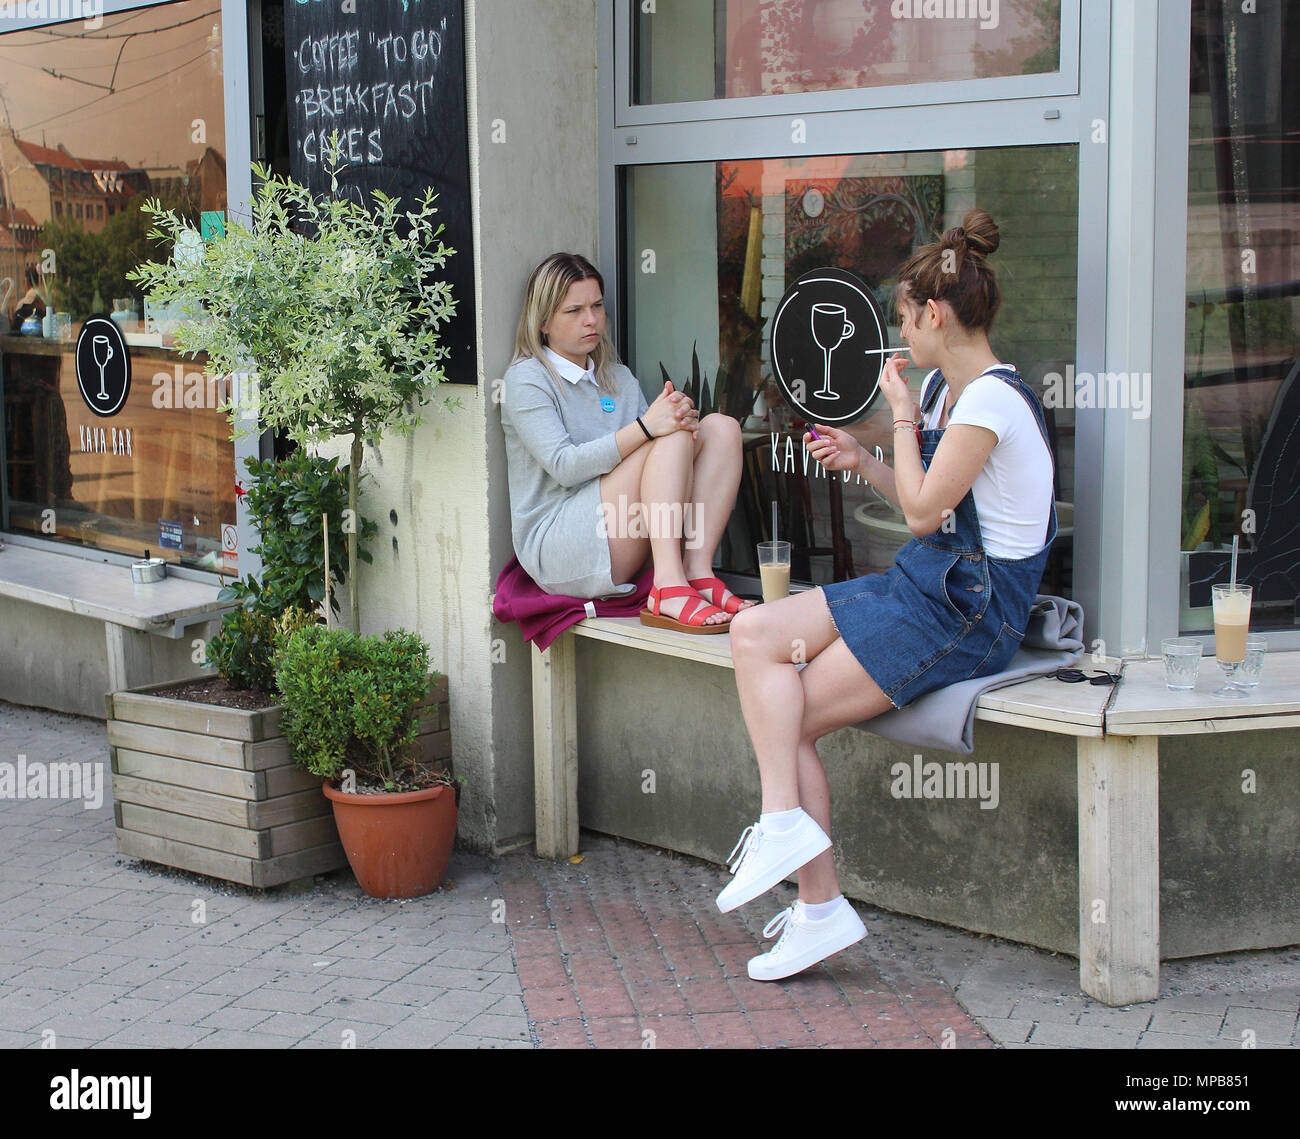 City life - two young girls sitting in front of a cafeterie in the street of Bratislava, capital of Slovakia and chatting - Stock Image